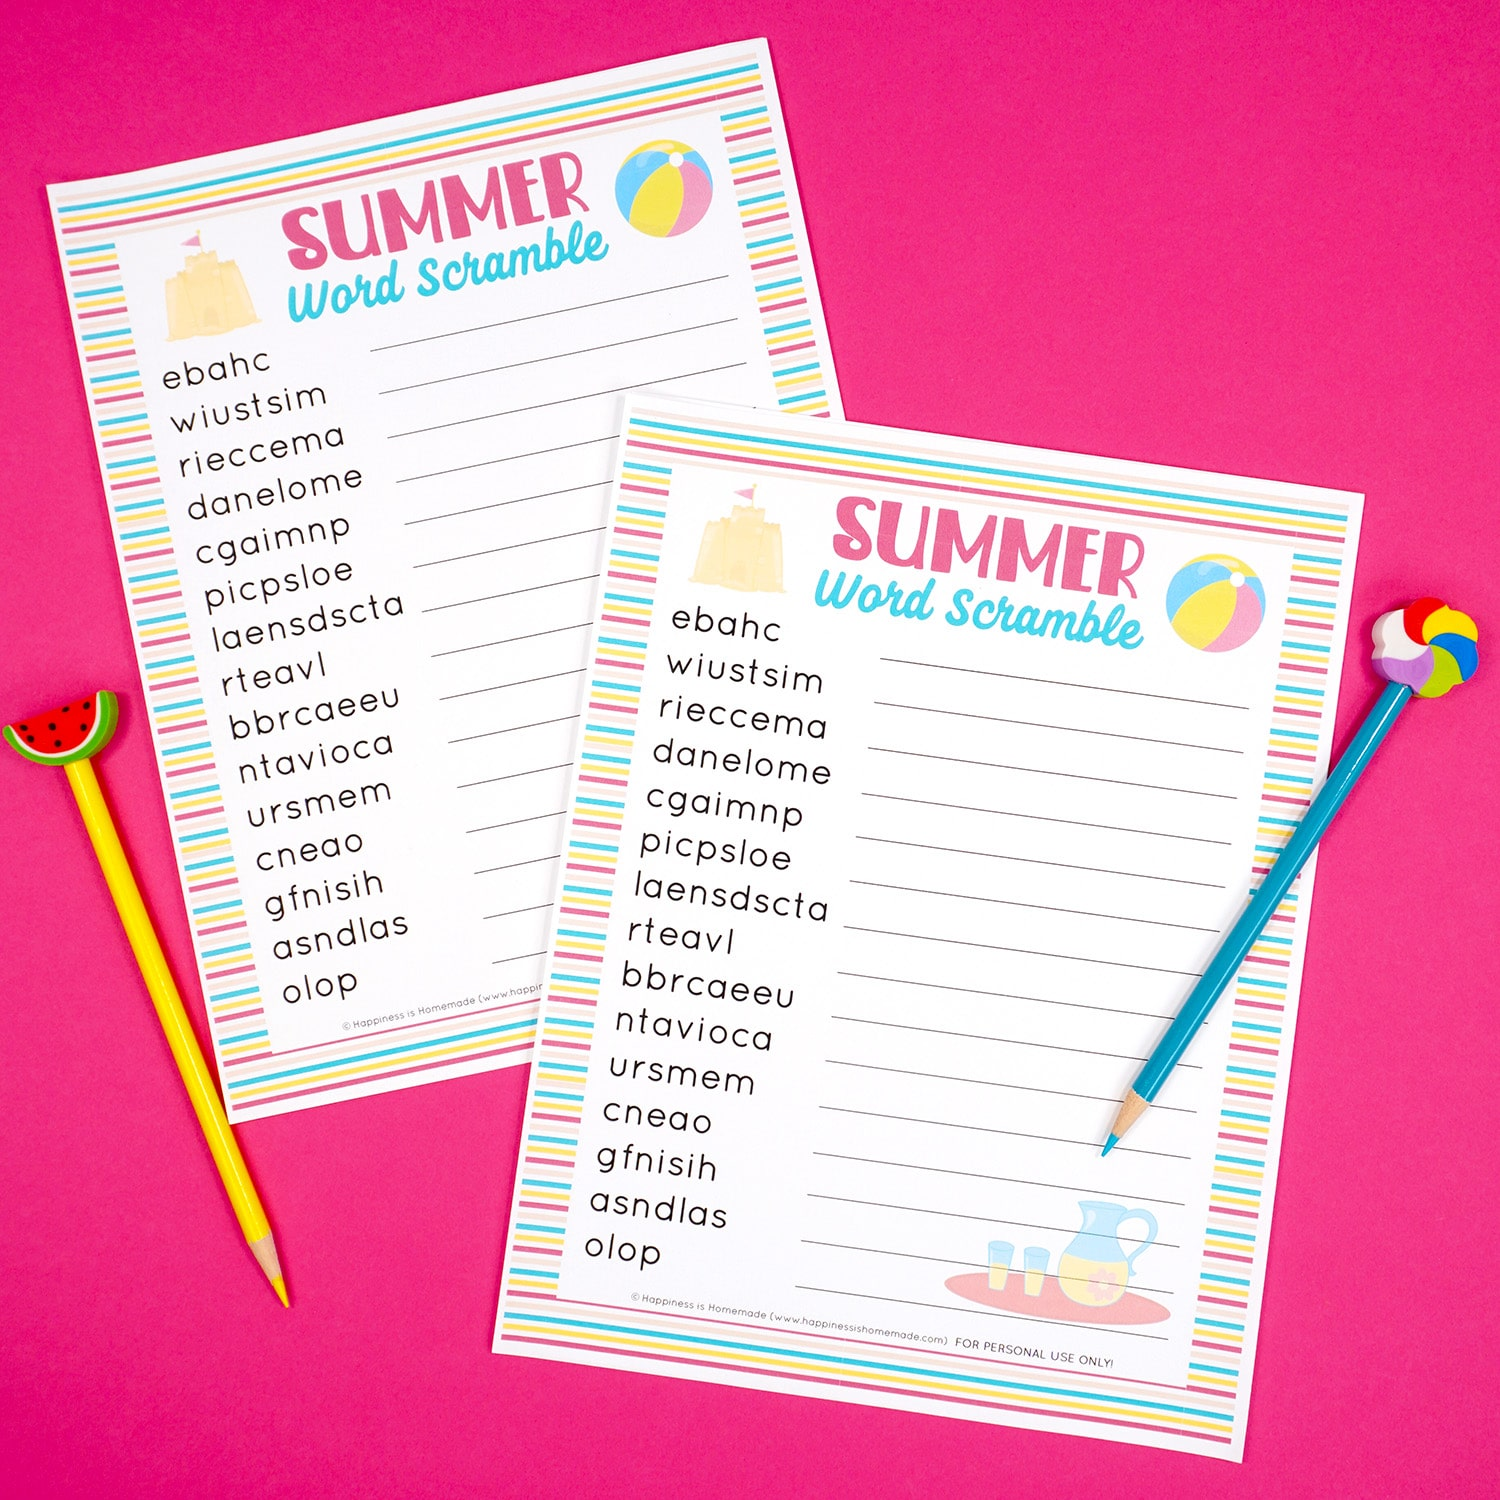 Two printable summer word scramble games on a pink background with yellow watermelon pencil and blue pencil